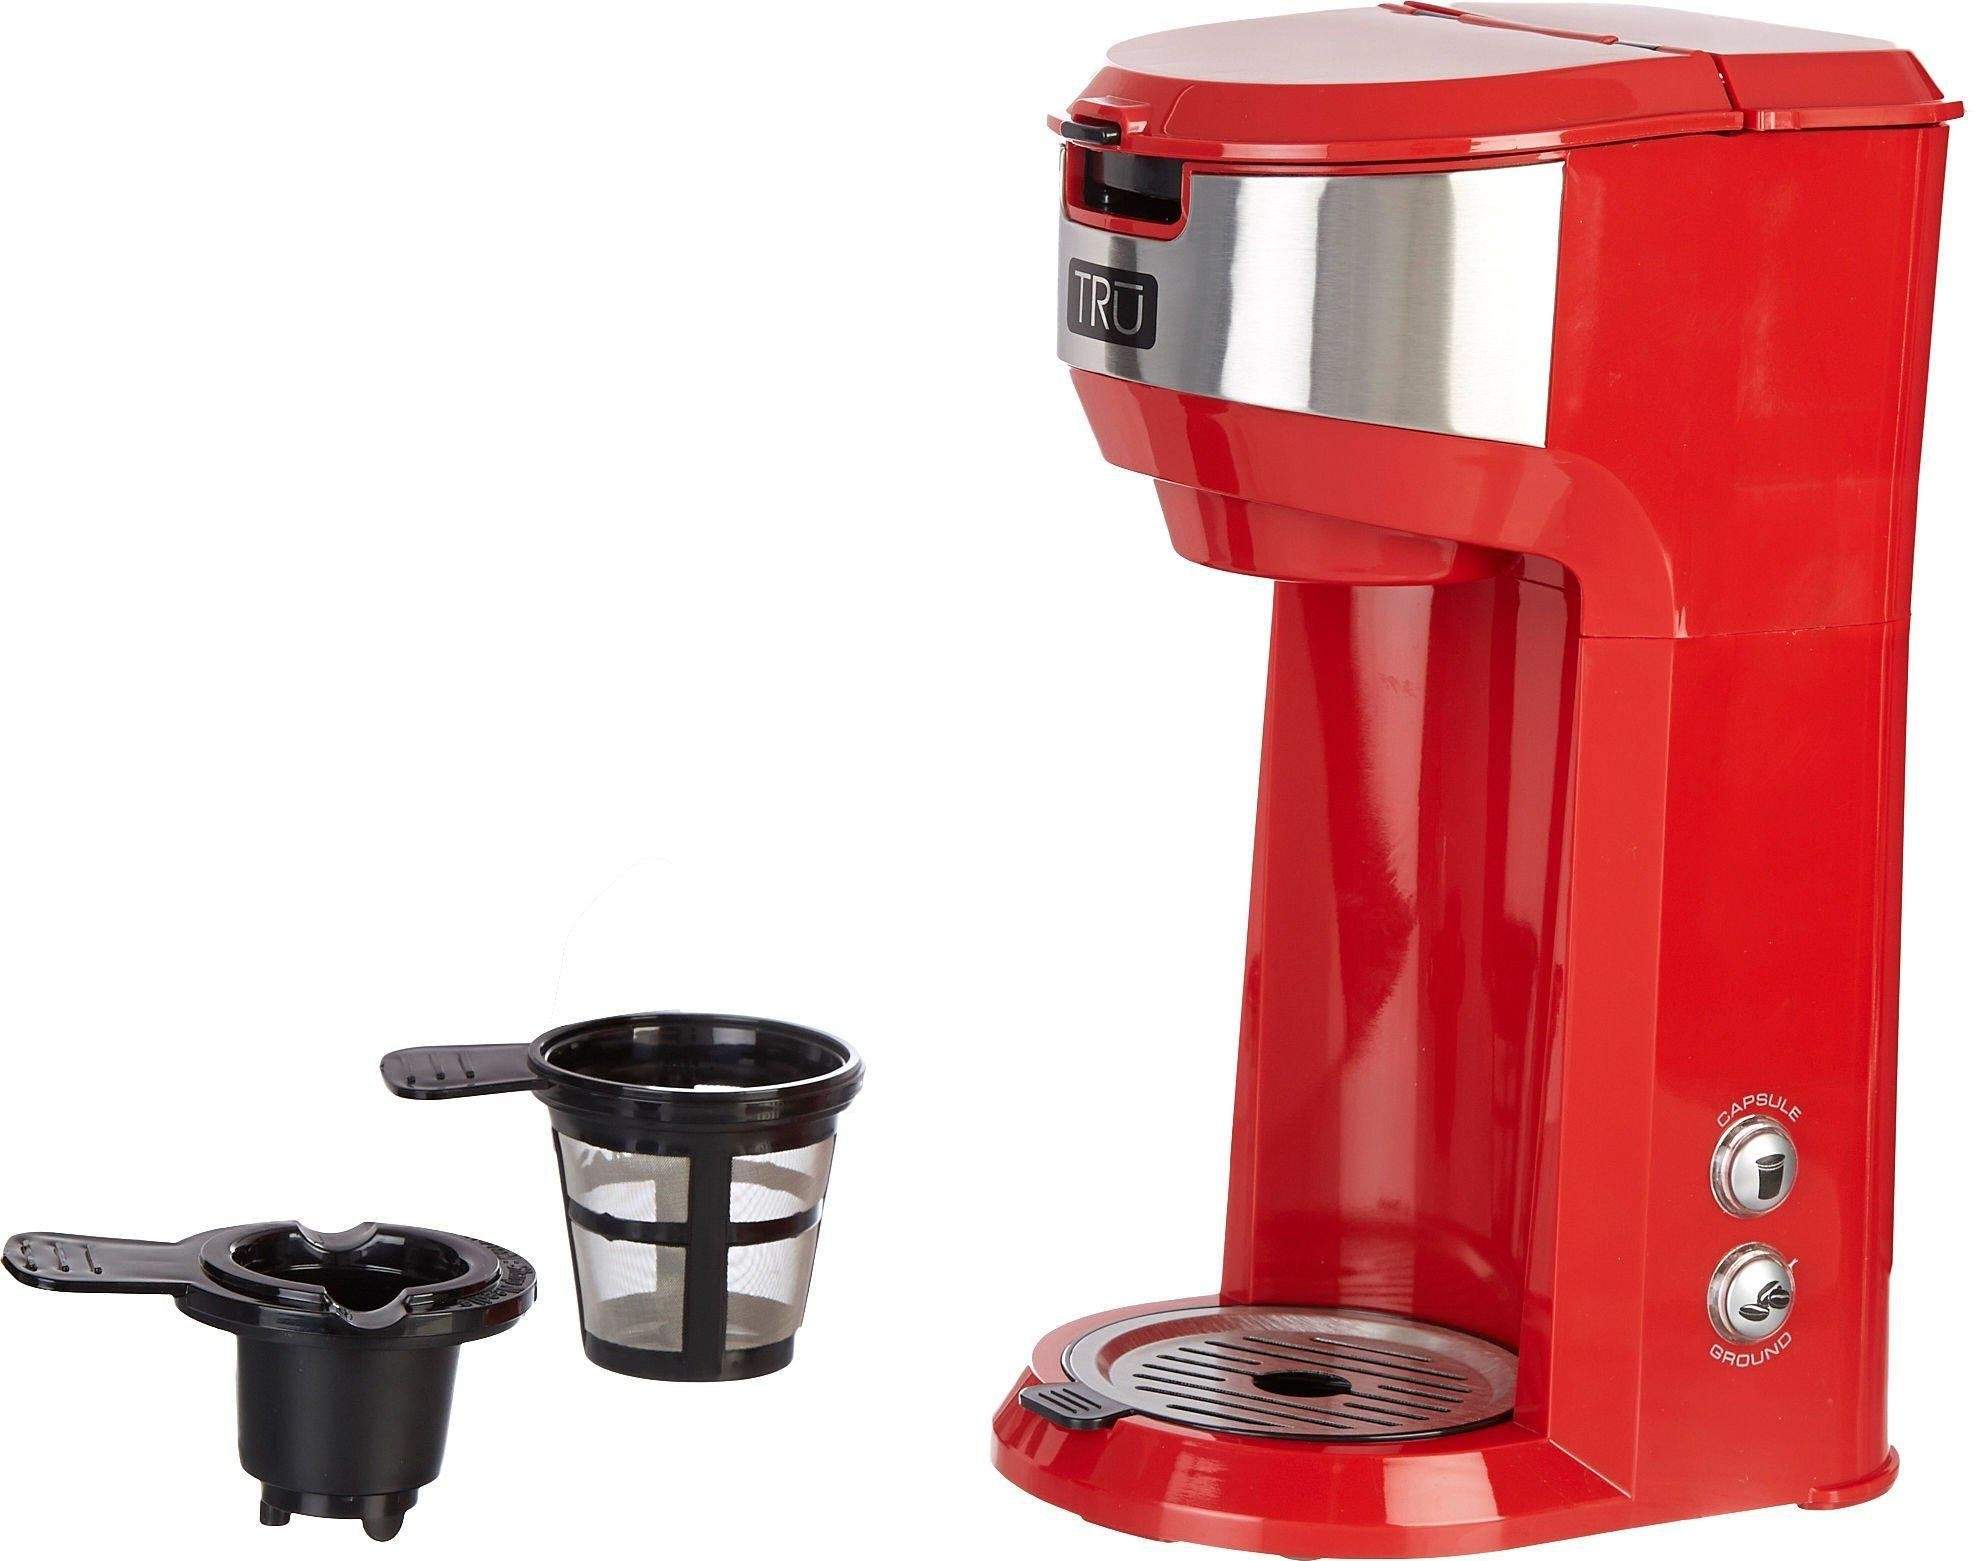 TRU Red Dual Brew Coffee Maker Bealls Florida